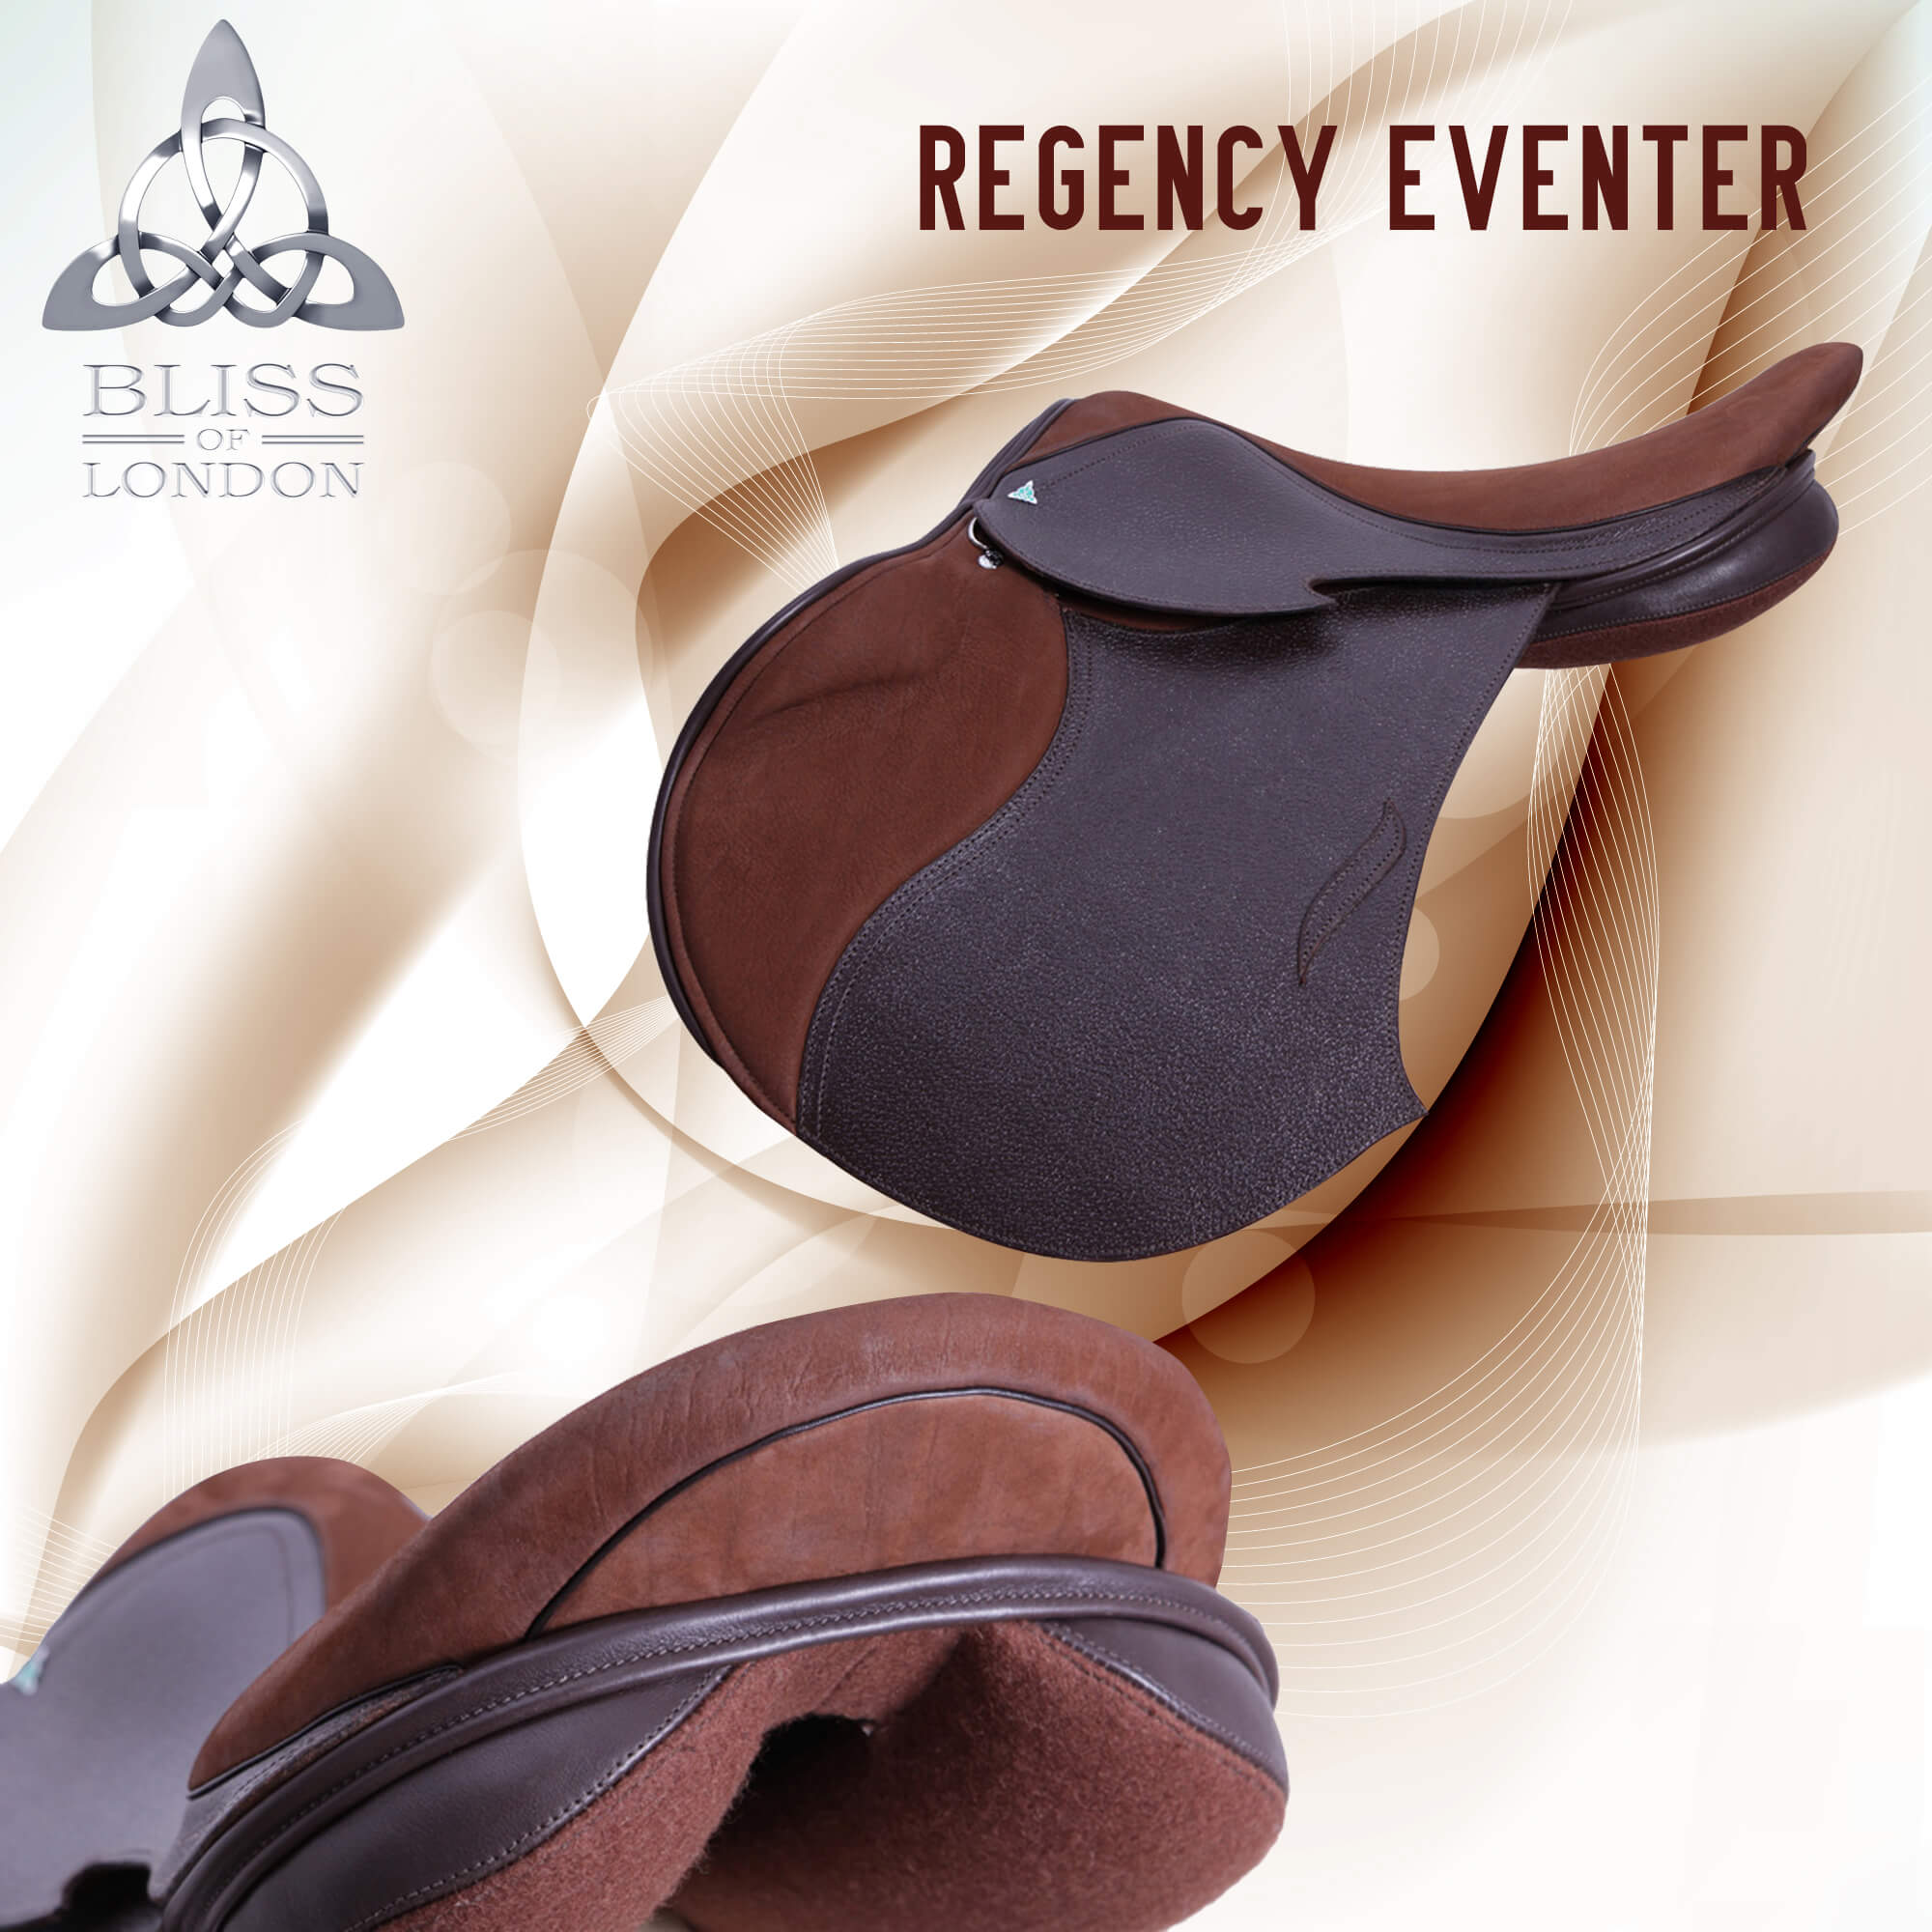 4 Bliss REGENCY EVENTER2